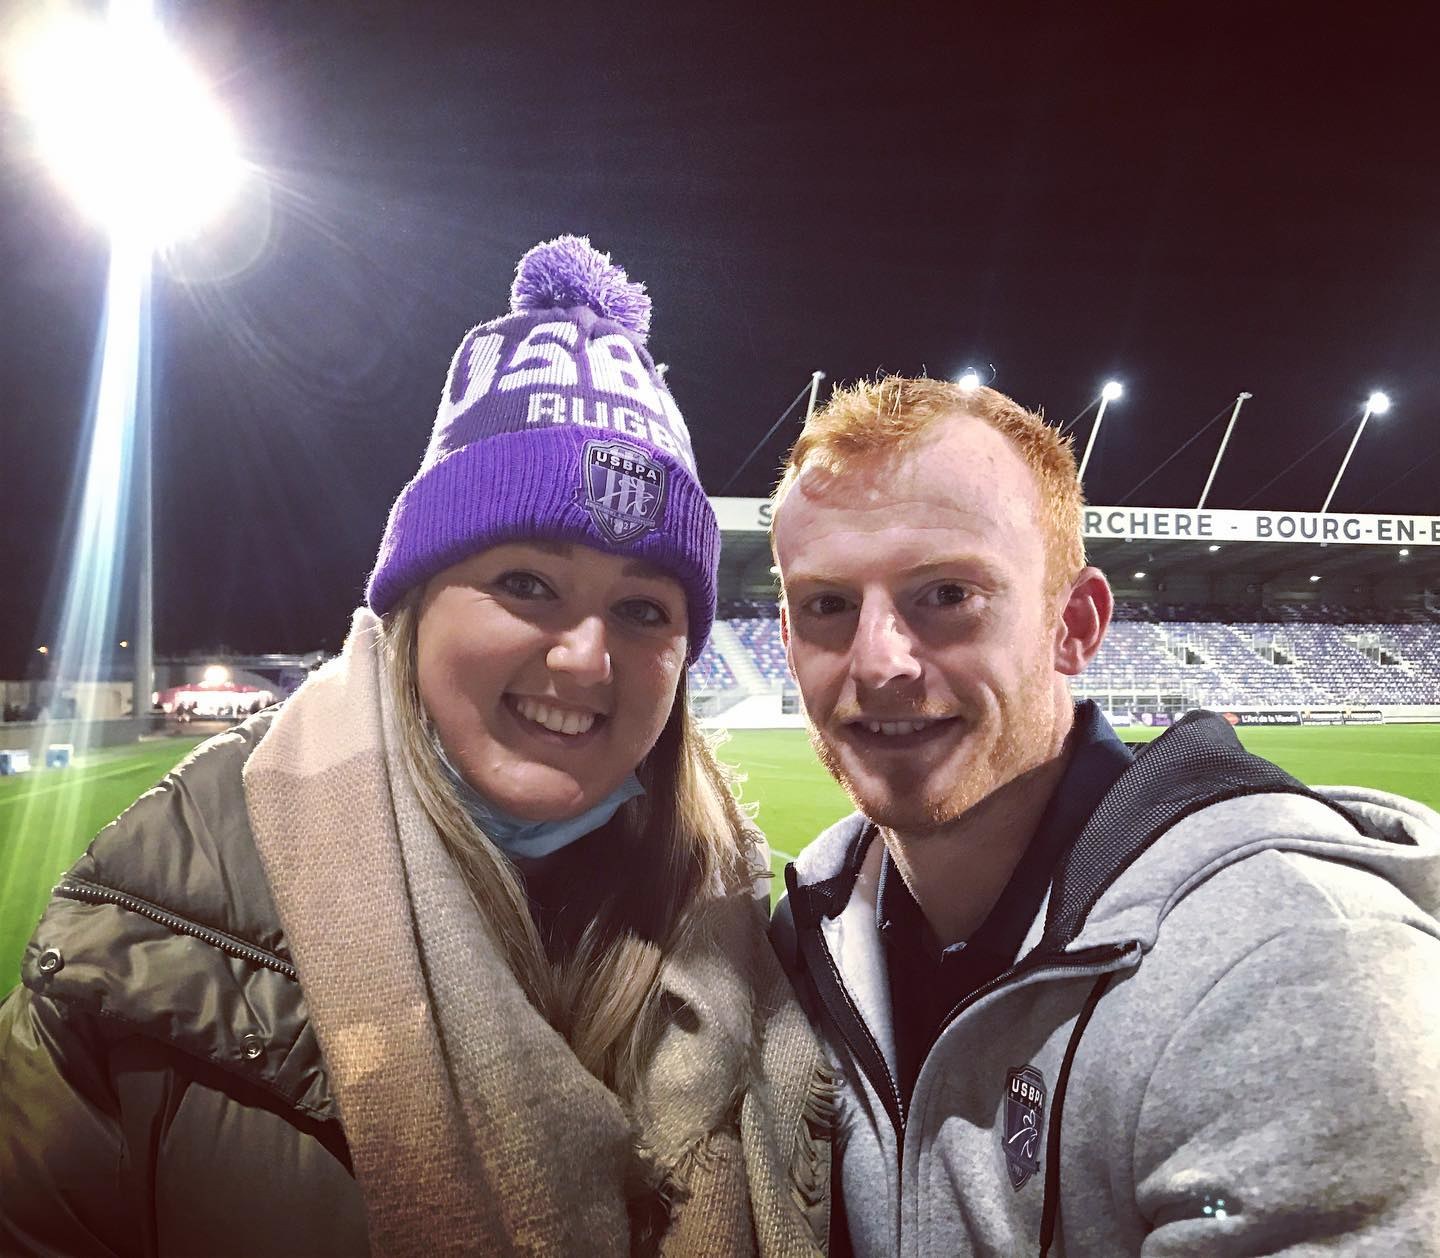 Peter Nelson with girlfriend Laura after the game in France.